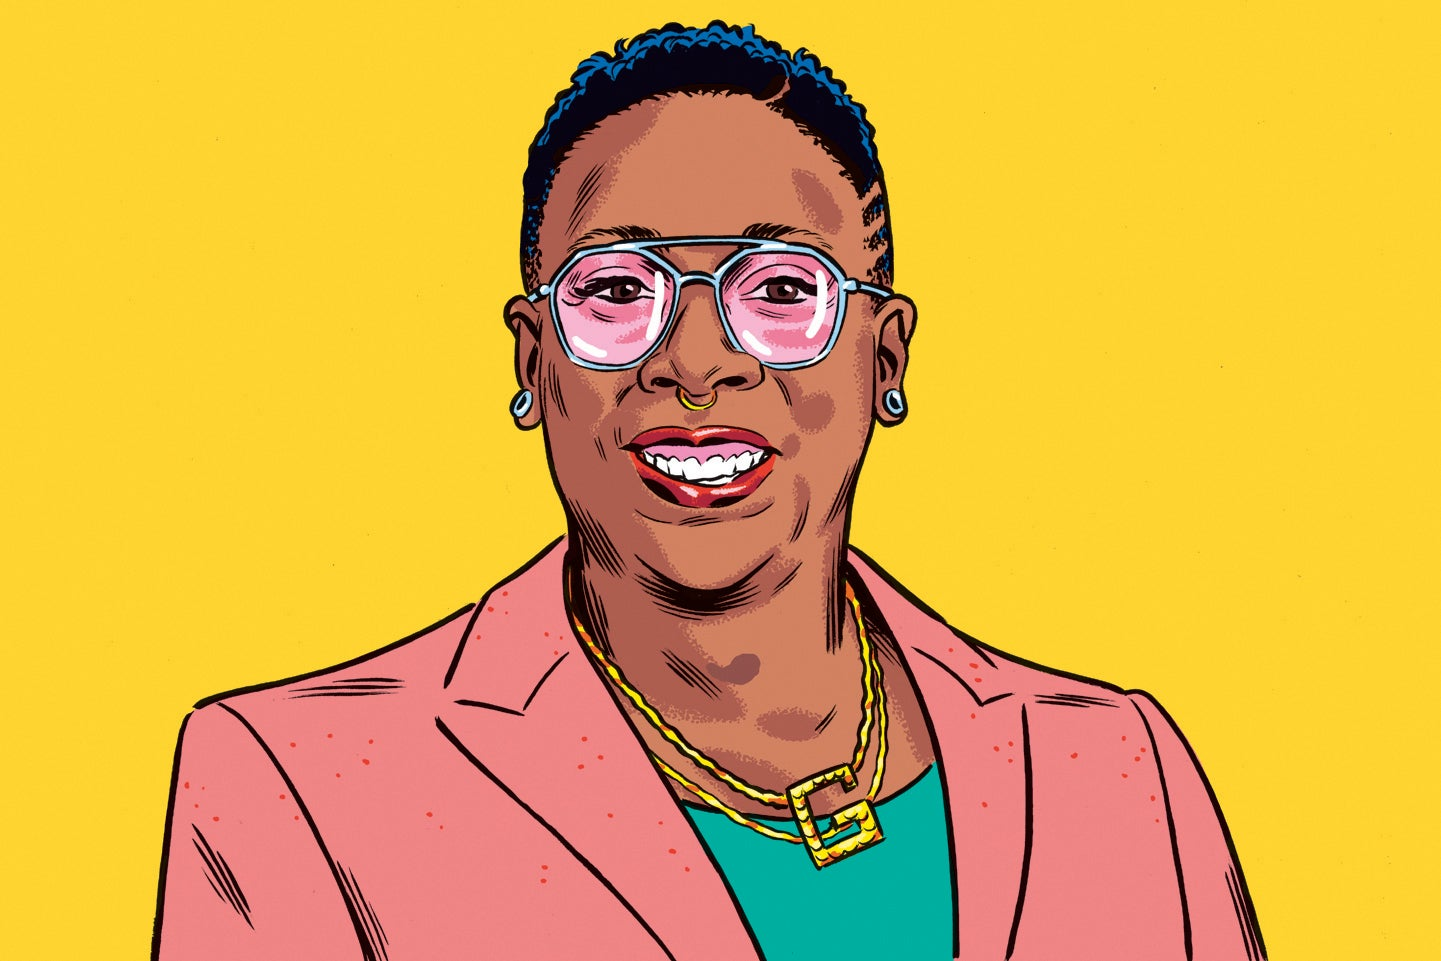 """Gina Yashere's Q&A: """"This planet needs a good shakedown. Wipe it out, start again, Etch A Sketch-style"""""""